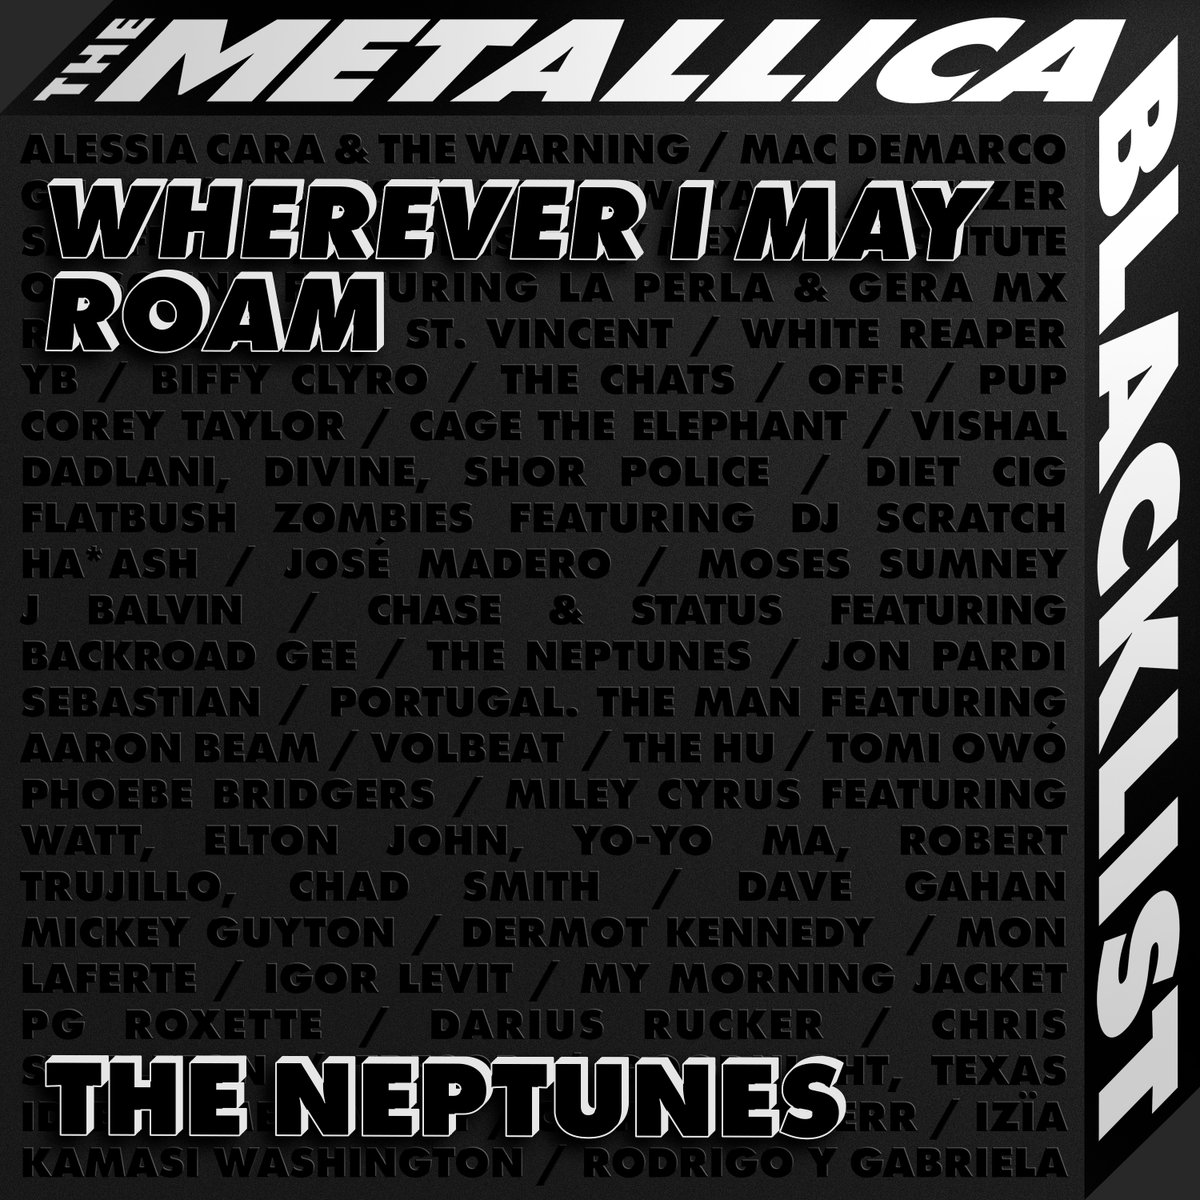 """The @Metallica Blacklist is out today with all streaming proceeds going to Metallica's @AWMHFoundation and @YELLOWORG 💛 Listen to #TheNeptunes remix of """"Wherever I May Roam"""" from The #MetallicaBlacklist https://t.co/c0vUFcUikc https://t.co/v5BBA32UsC"""